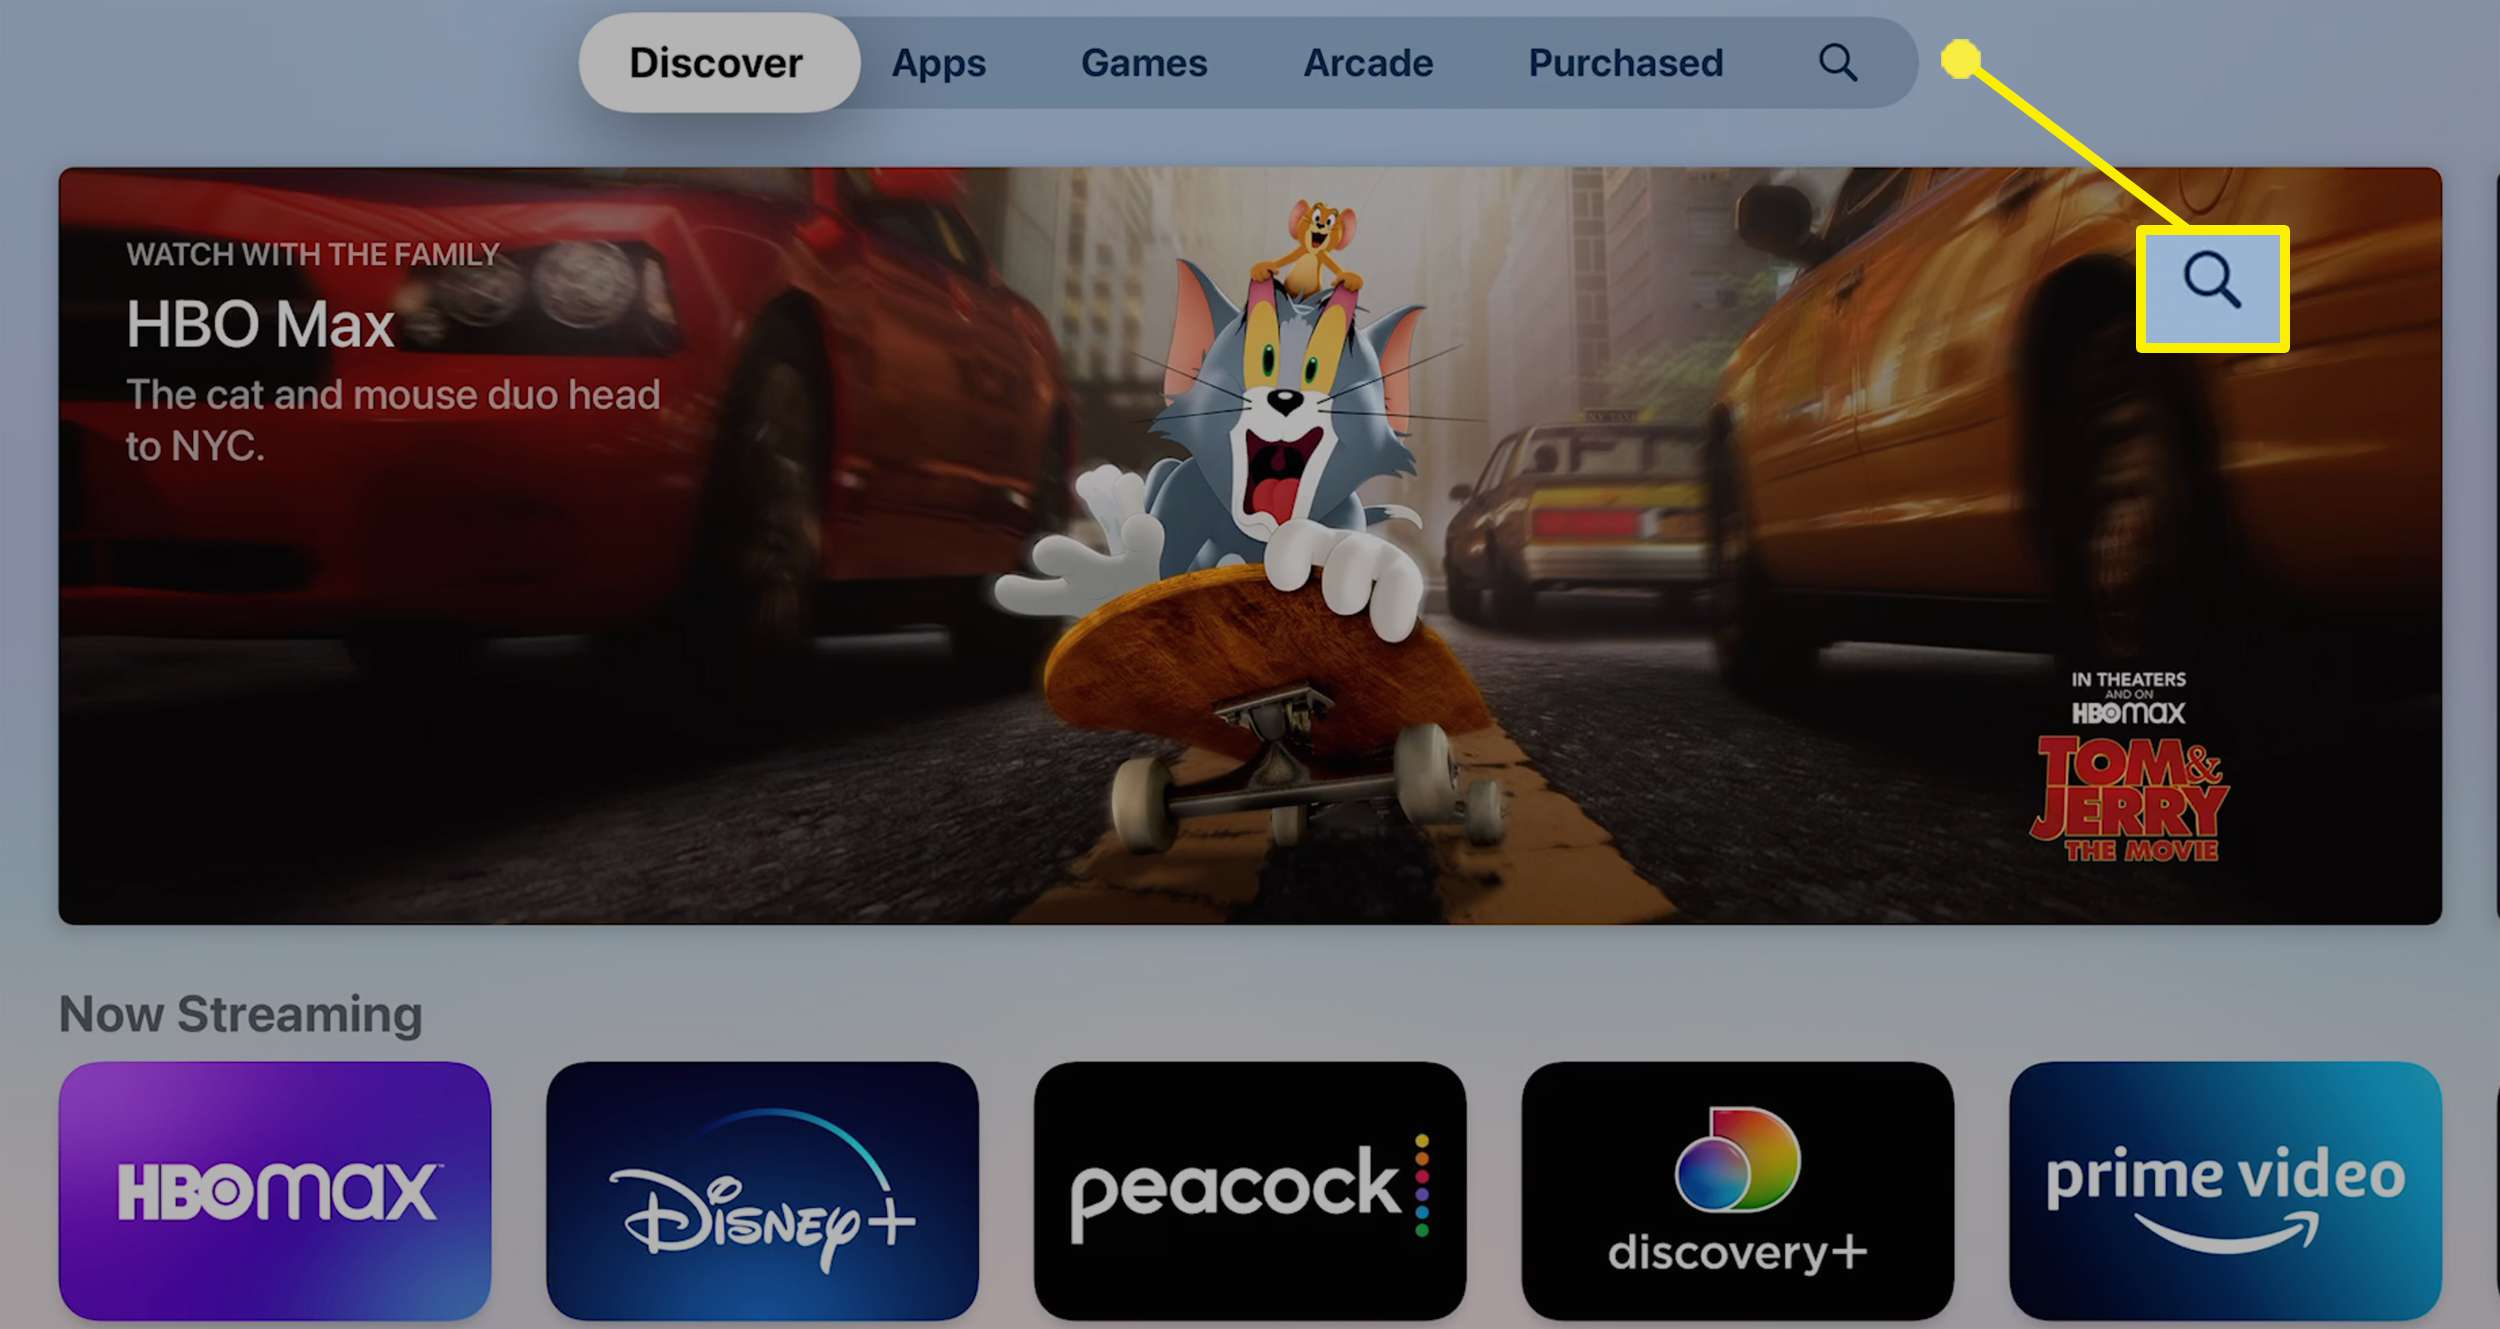 Downloading Peacock on an Apple TV.